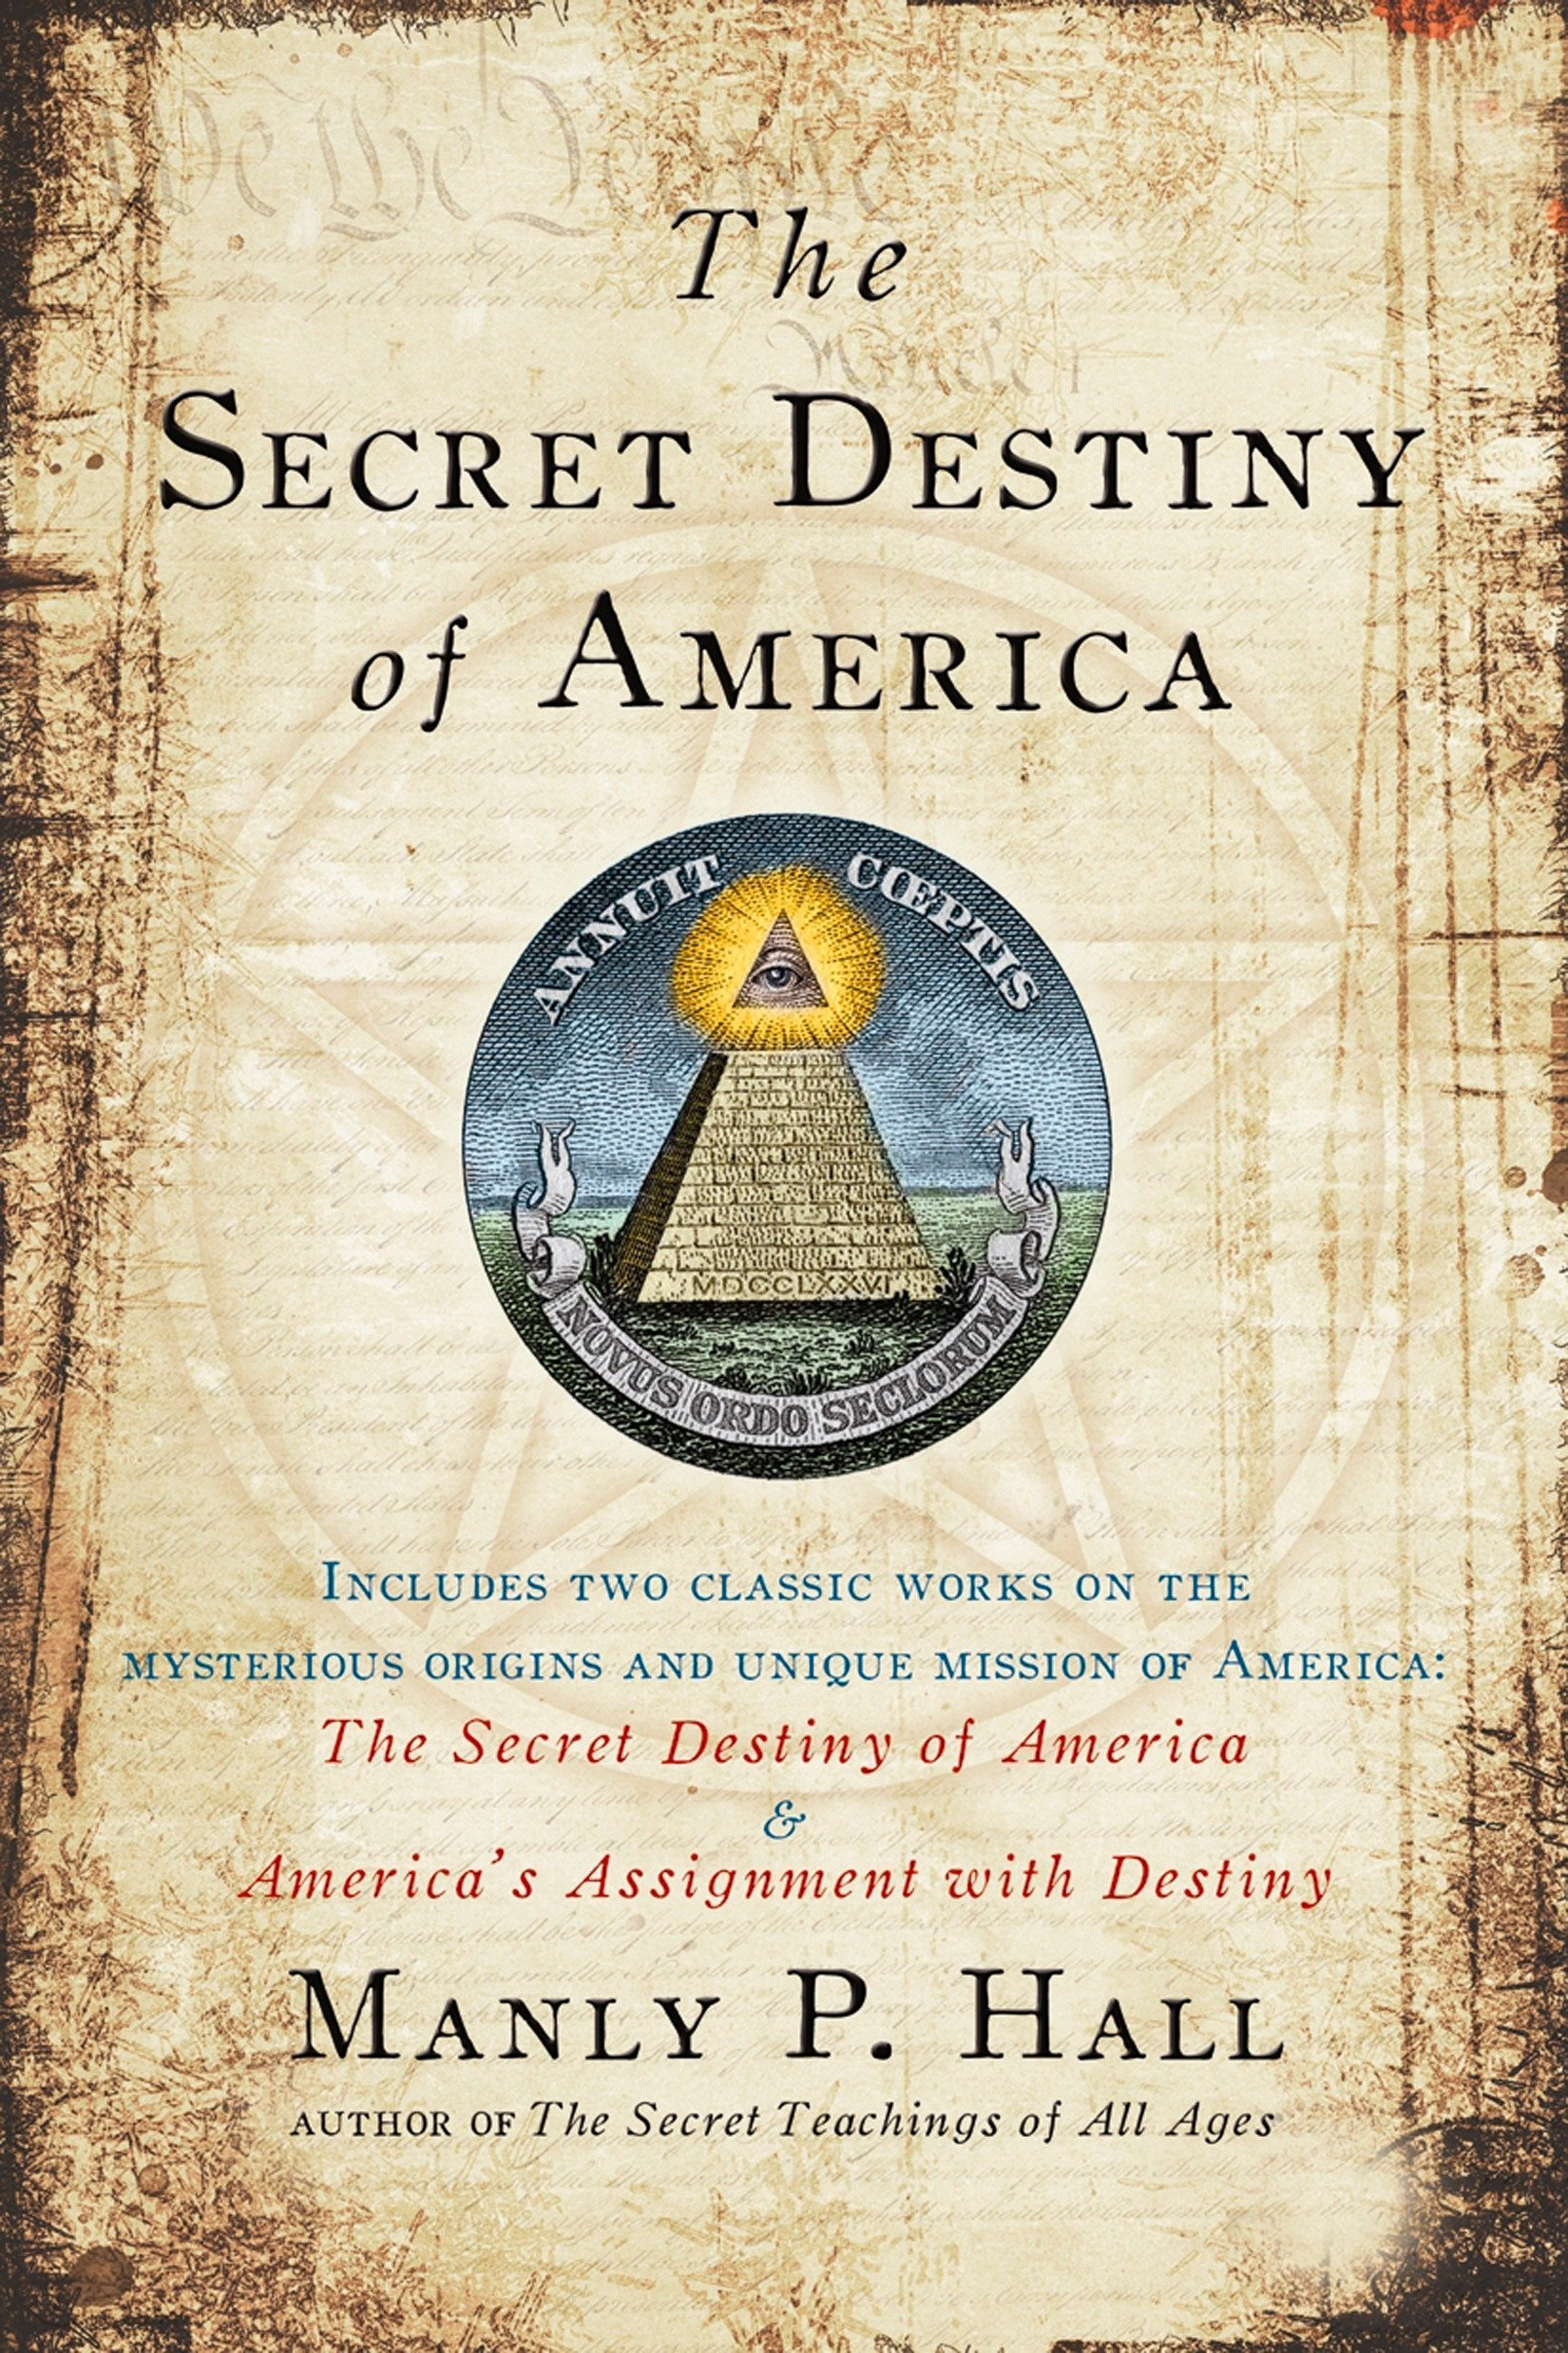 The Secret Destiny Of America Manly P Hall 8601400131138 Amazon